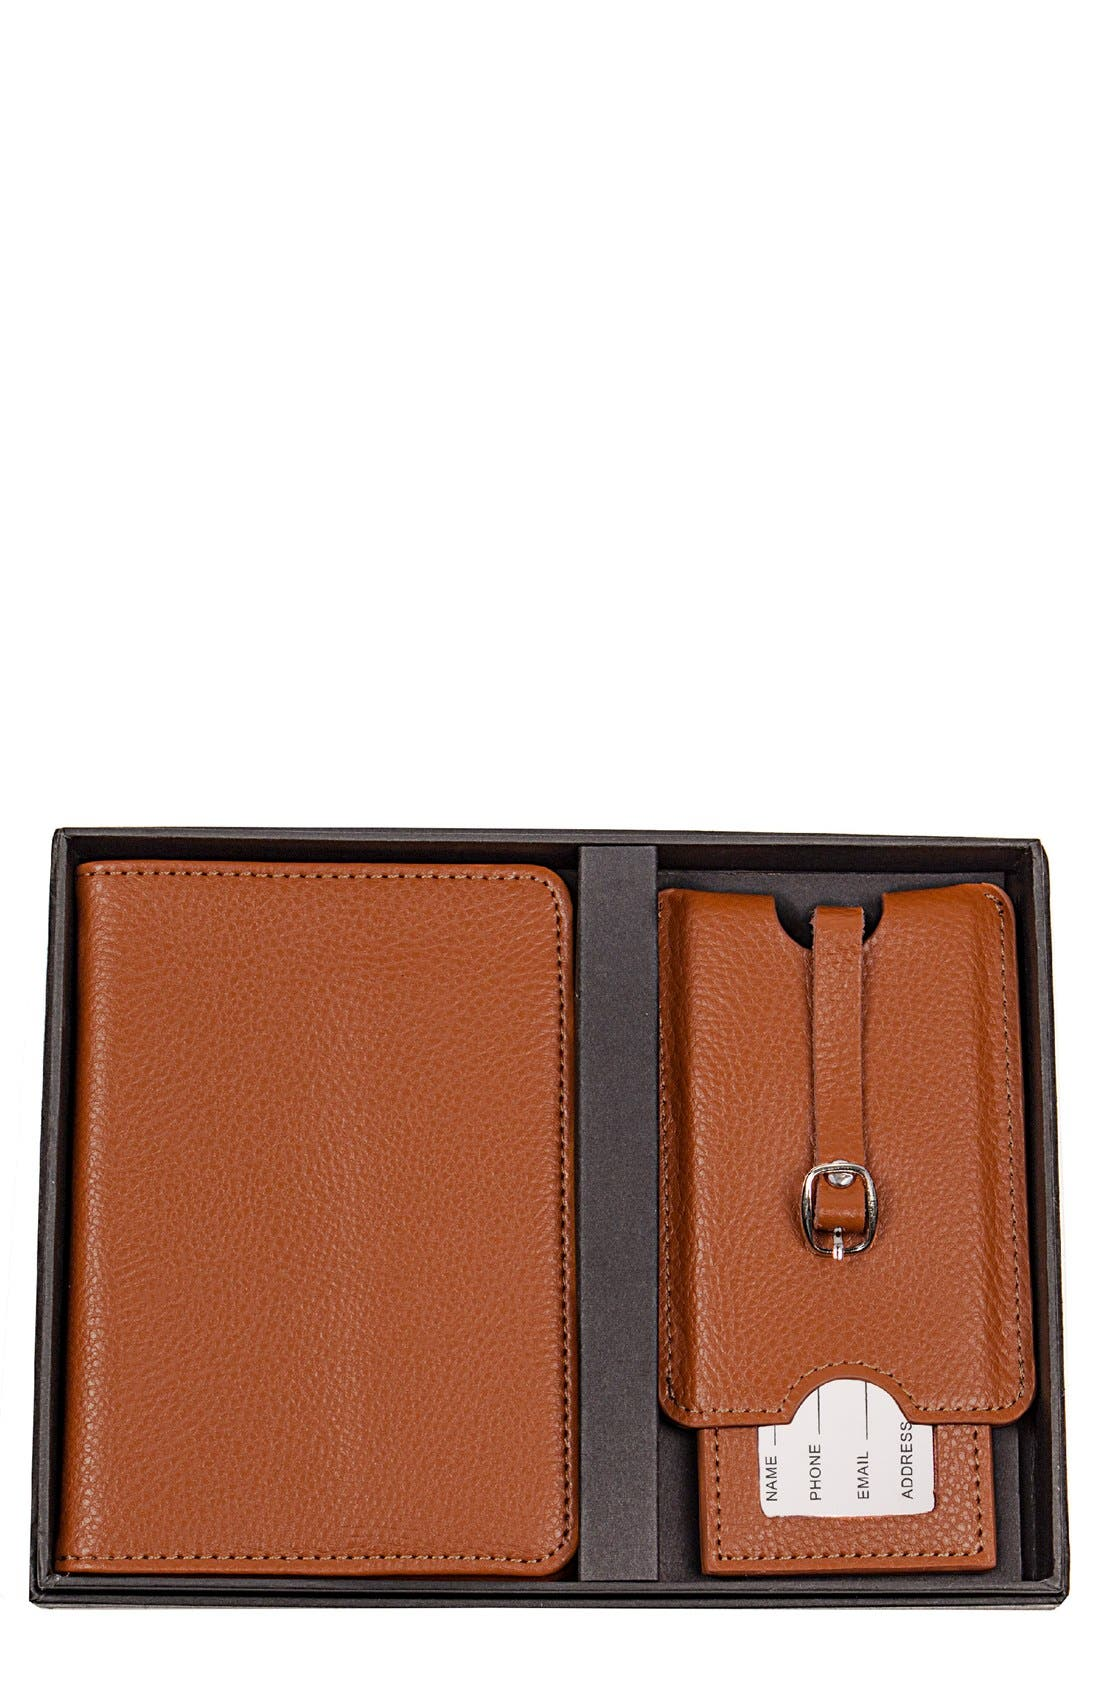 Monogram Passport Case & Luggage Tag,                             Main thumbnail 1, color,                             200